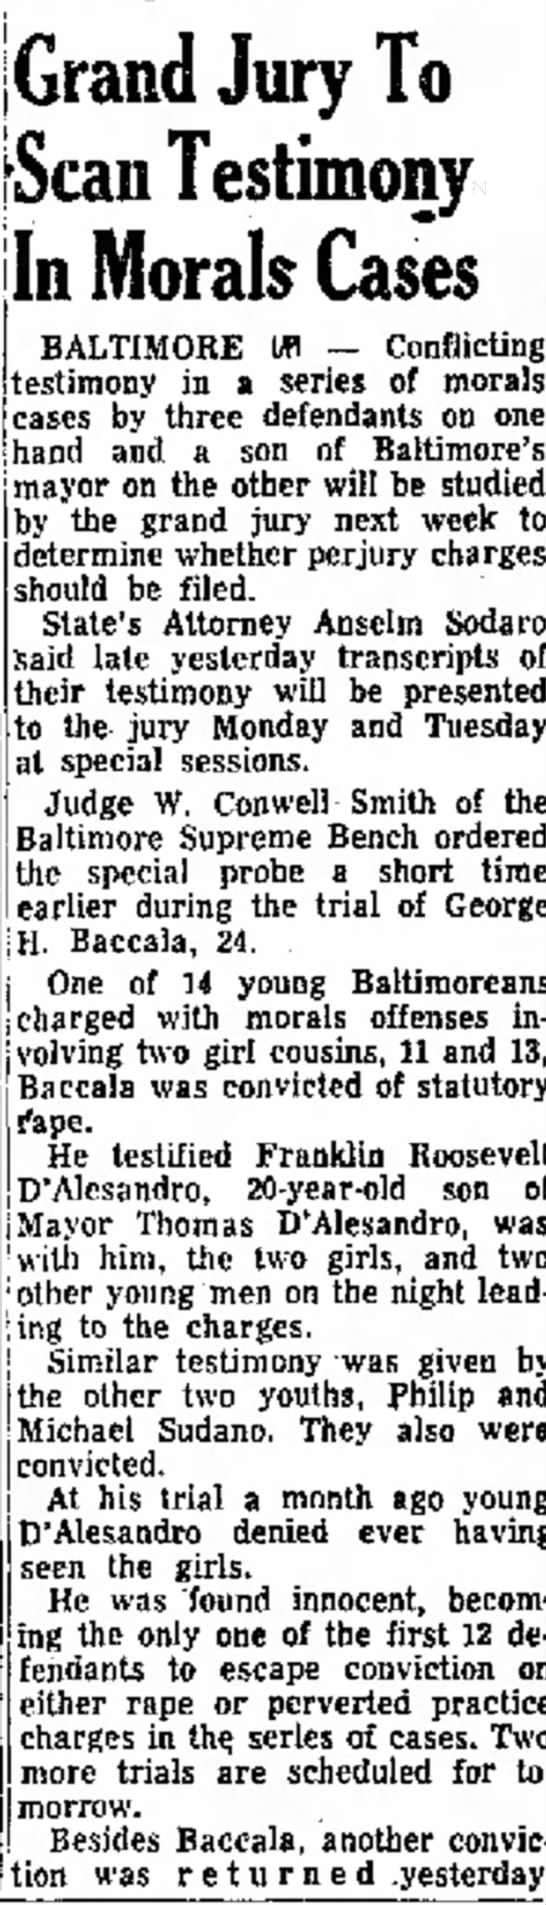 Grand jury investigation into 1953 Baltimore rape acquittal of Franklin D. Roosevelt D'Allesandro -